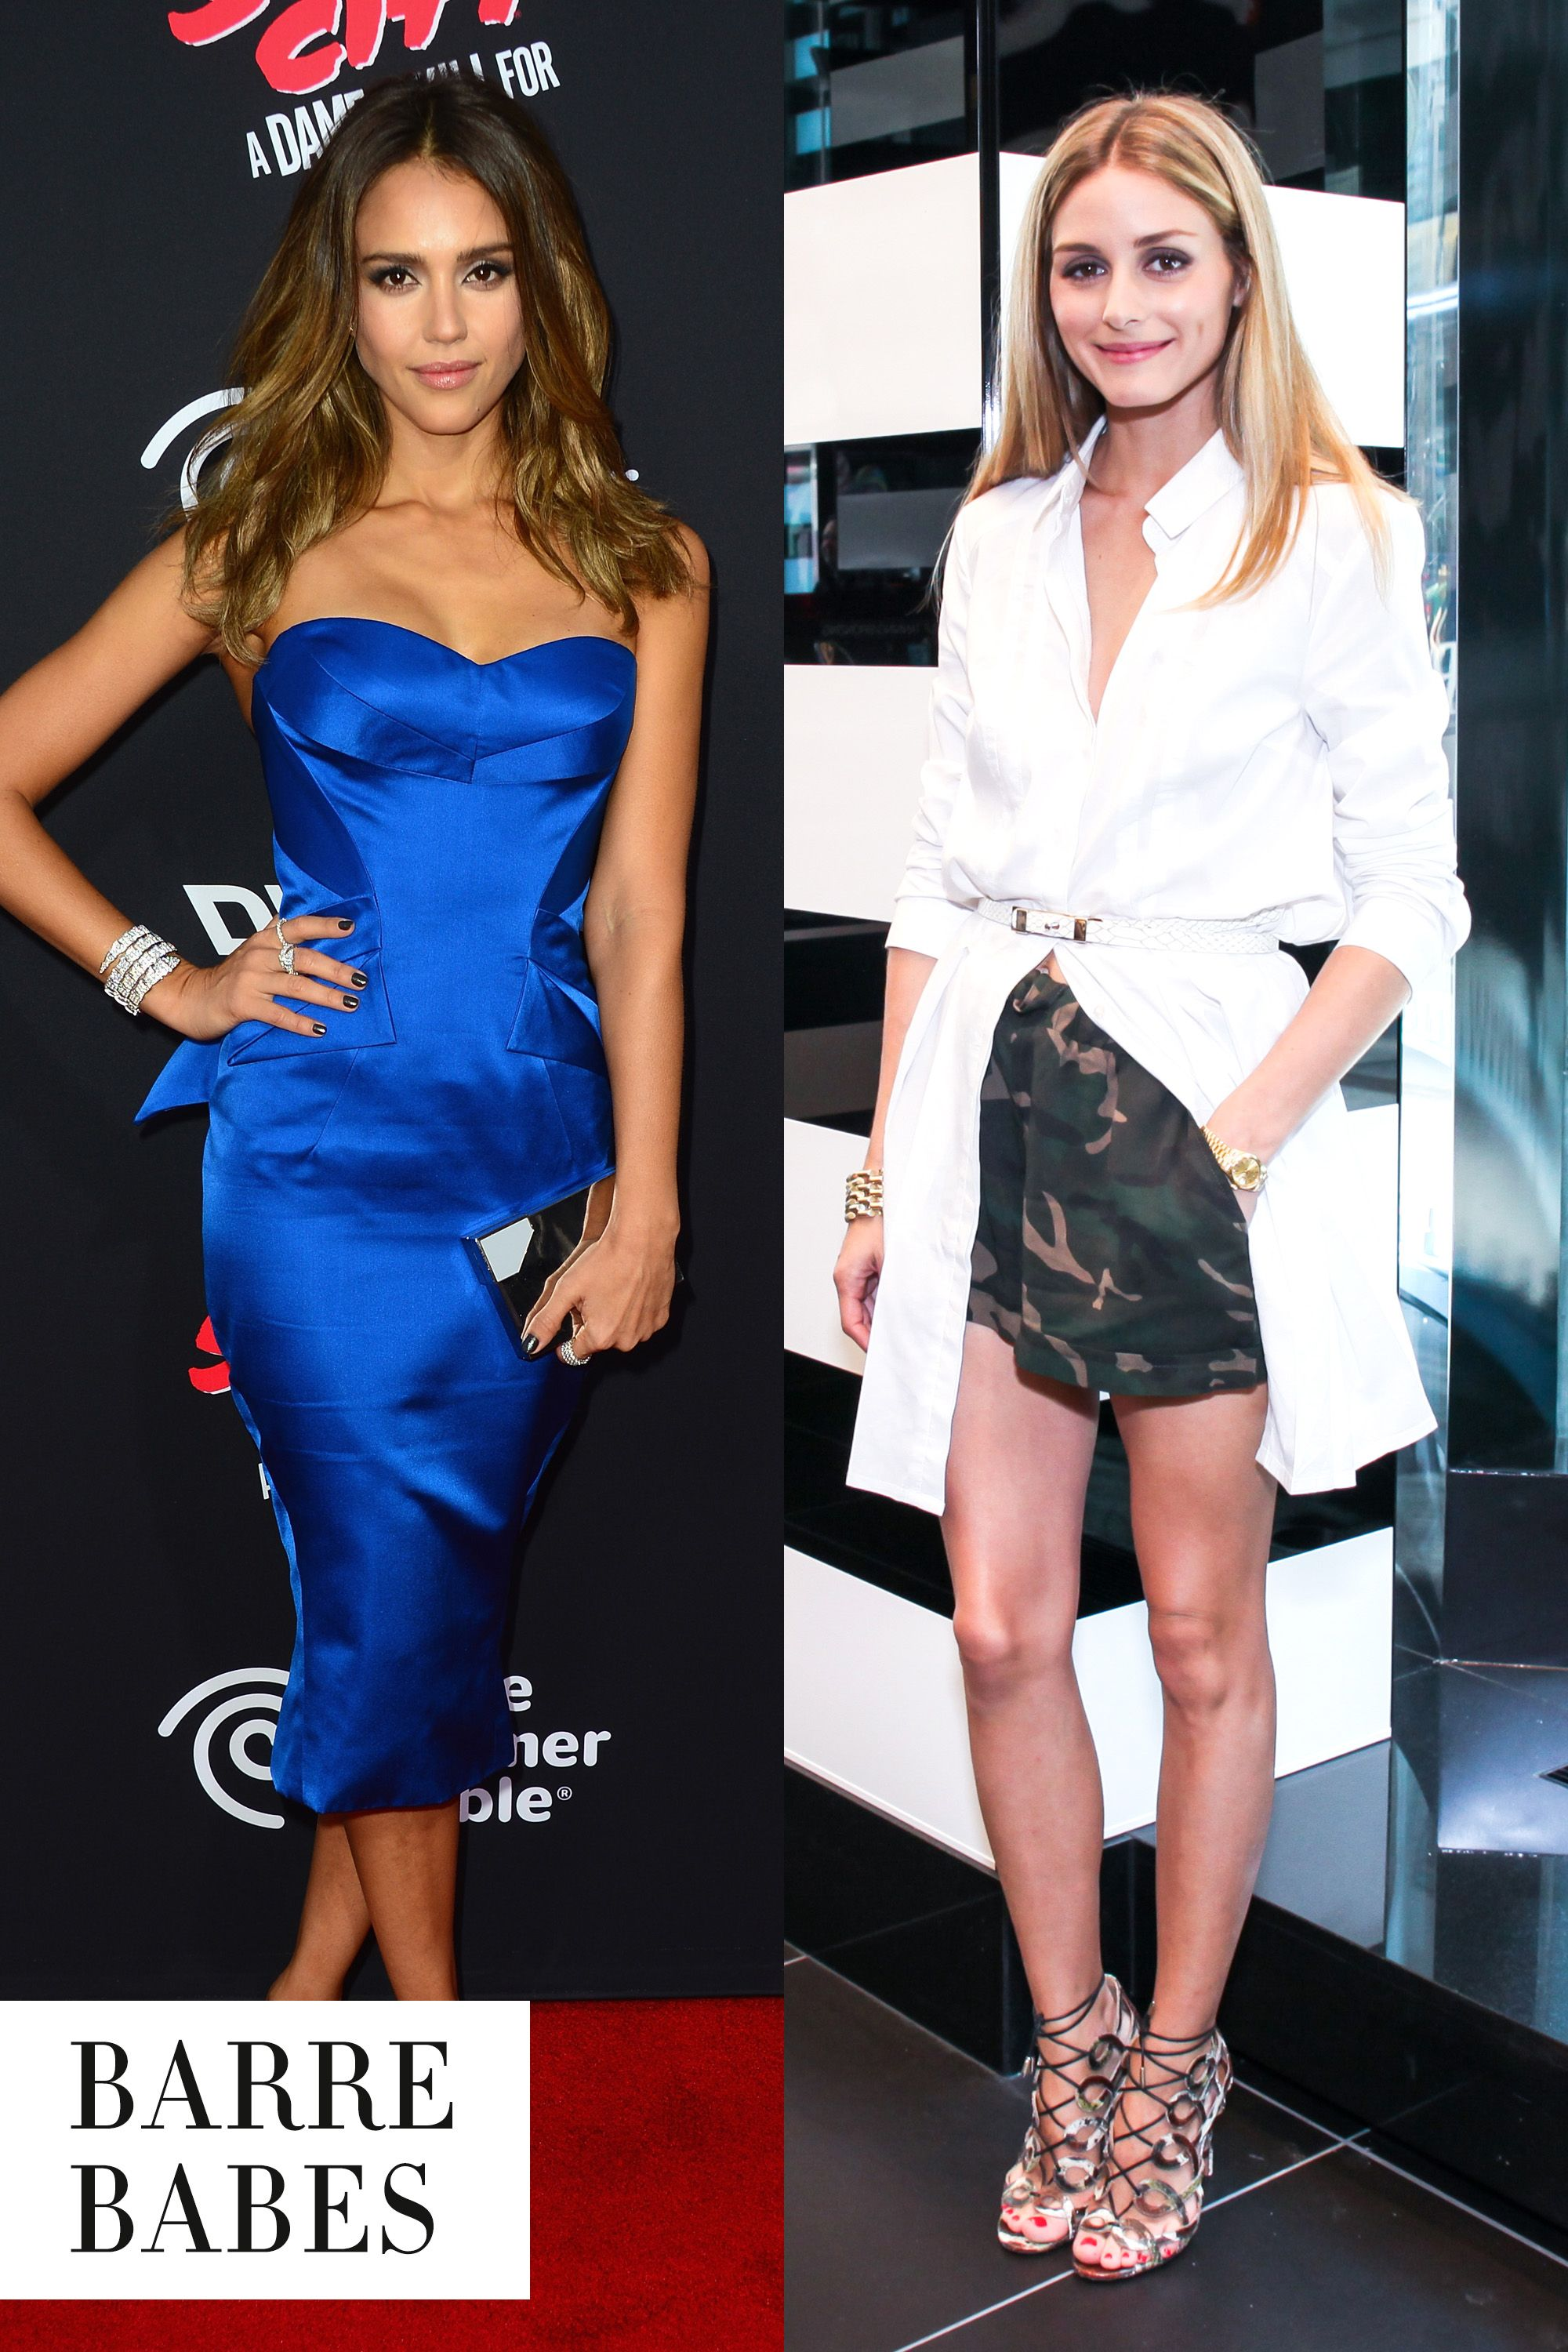 "<strong>The Celebs:</strong> Jessica Alba, <a target=""_blank"" href=""http://www.harpersbazaar.com/beauty/diet-fitness/a10891/olivia-palermo-favorite-workout/"">Olivia Palermo</a>  <strong>The Workout:</strong> Barre  <strong>The Body Benefits:</strong> Barre classes use exercise balls, rubber bands and ballet barres to increase flexibility and lean muscle mass and tone and strengthen all over. Plus, they're gentle on joints.  <strong>The Hot Spots:</strong> <a target=""_blank"" href=""https://www.flywheelsports.com/"">Flybarre</a>, <a target=""_blank"" href=""http://www.thedaileymethod.com/"">The Dailey Method</a>"